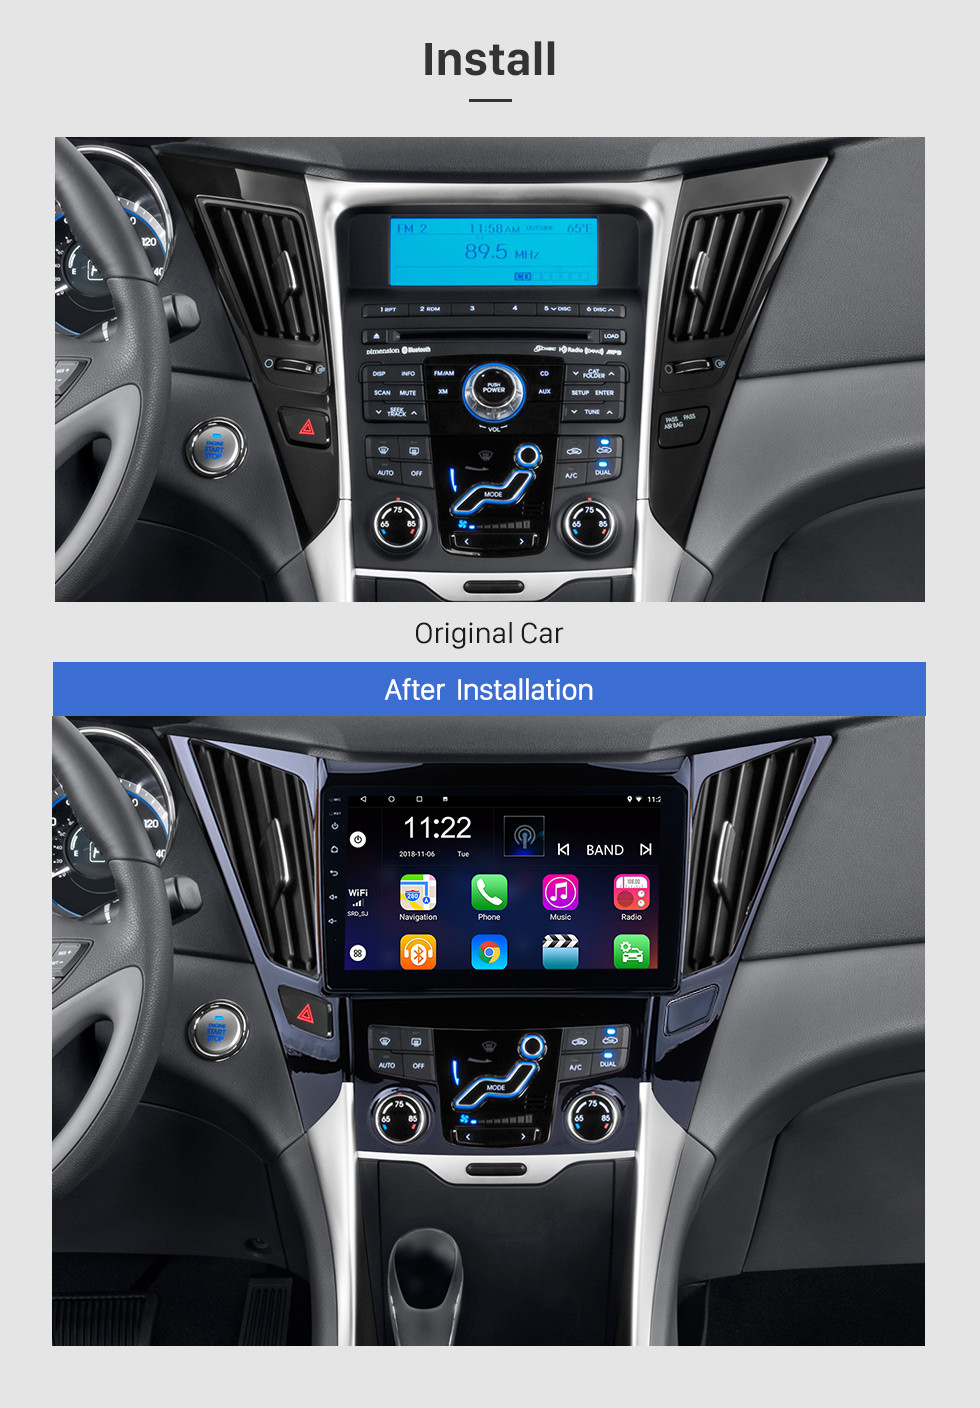 Seicane 9 Inch All-in-One Android 8.1 GPS Navigation system For 2011-2015 HYUNDAI Sonata i40 i45 with Touch Screen TPMS DVR OBD II Rear camera AUX USB SD Steering Wheel Control 3G WiFi Video Radio Bluetooth